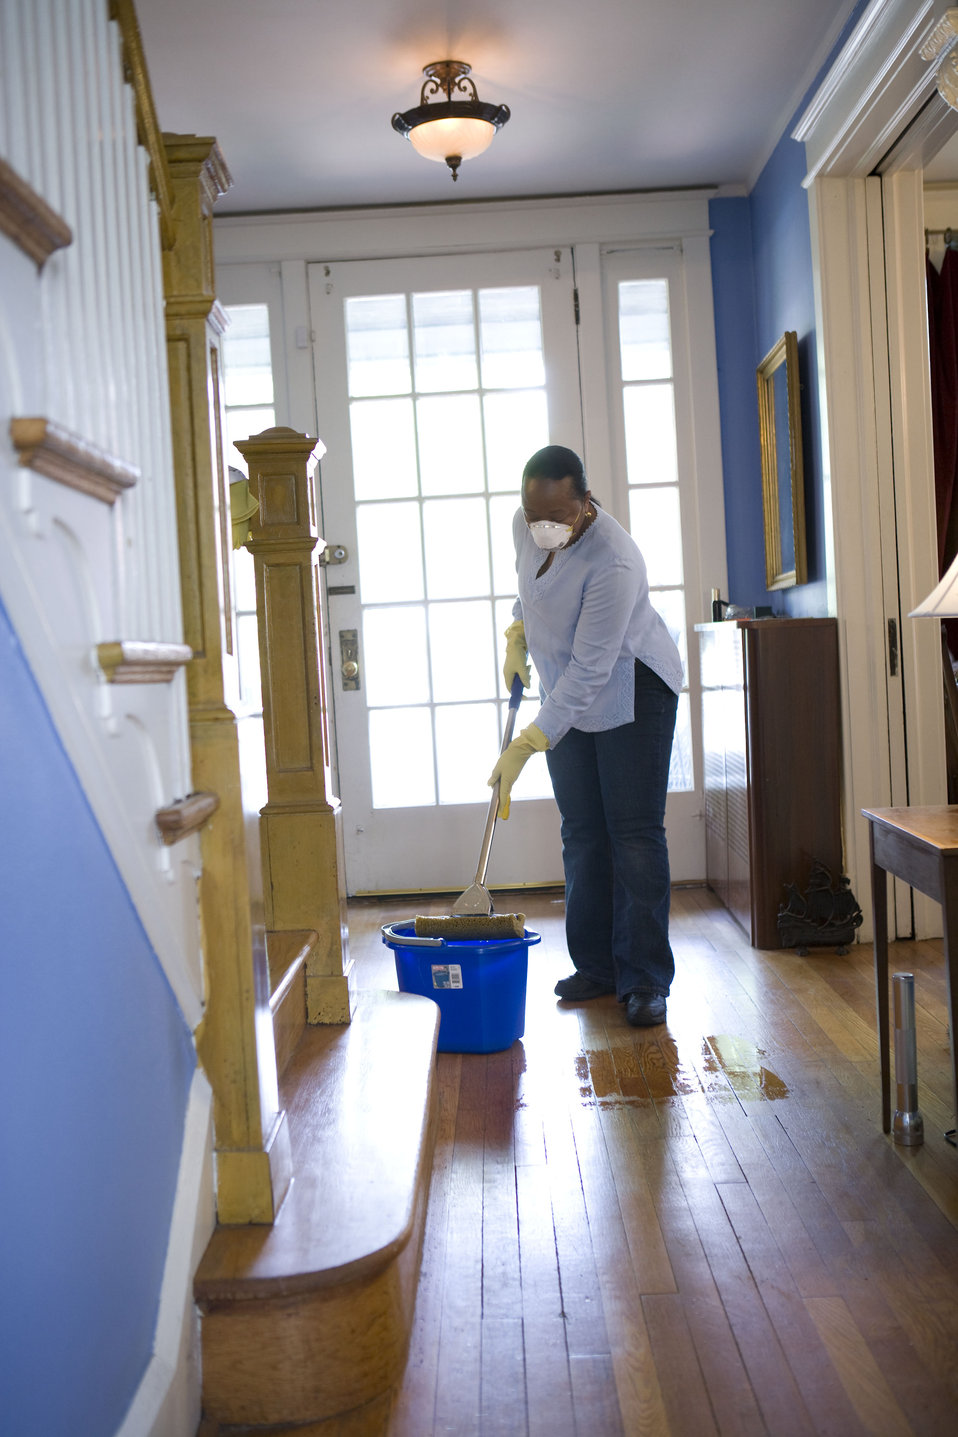 This African-American woman was in the process of damp-mopping her home's entrance way. When renovating a home, you should use a damp mop or